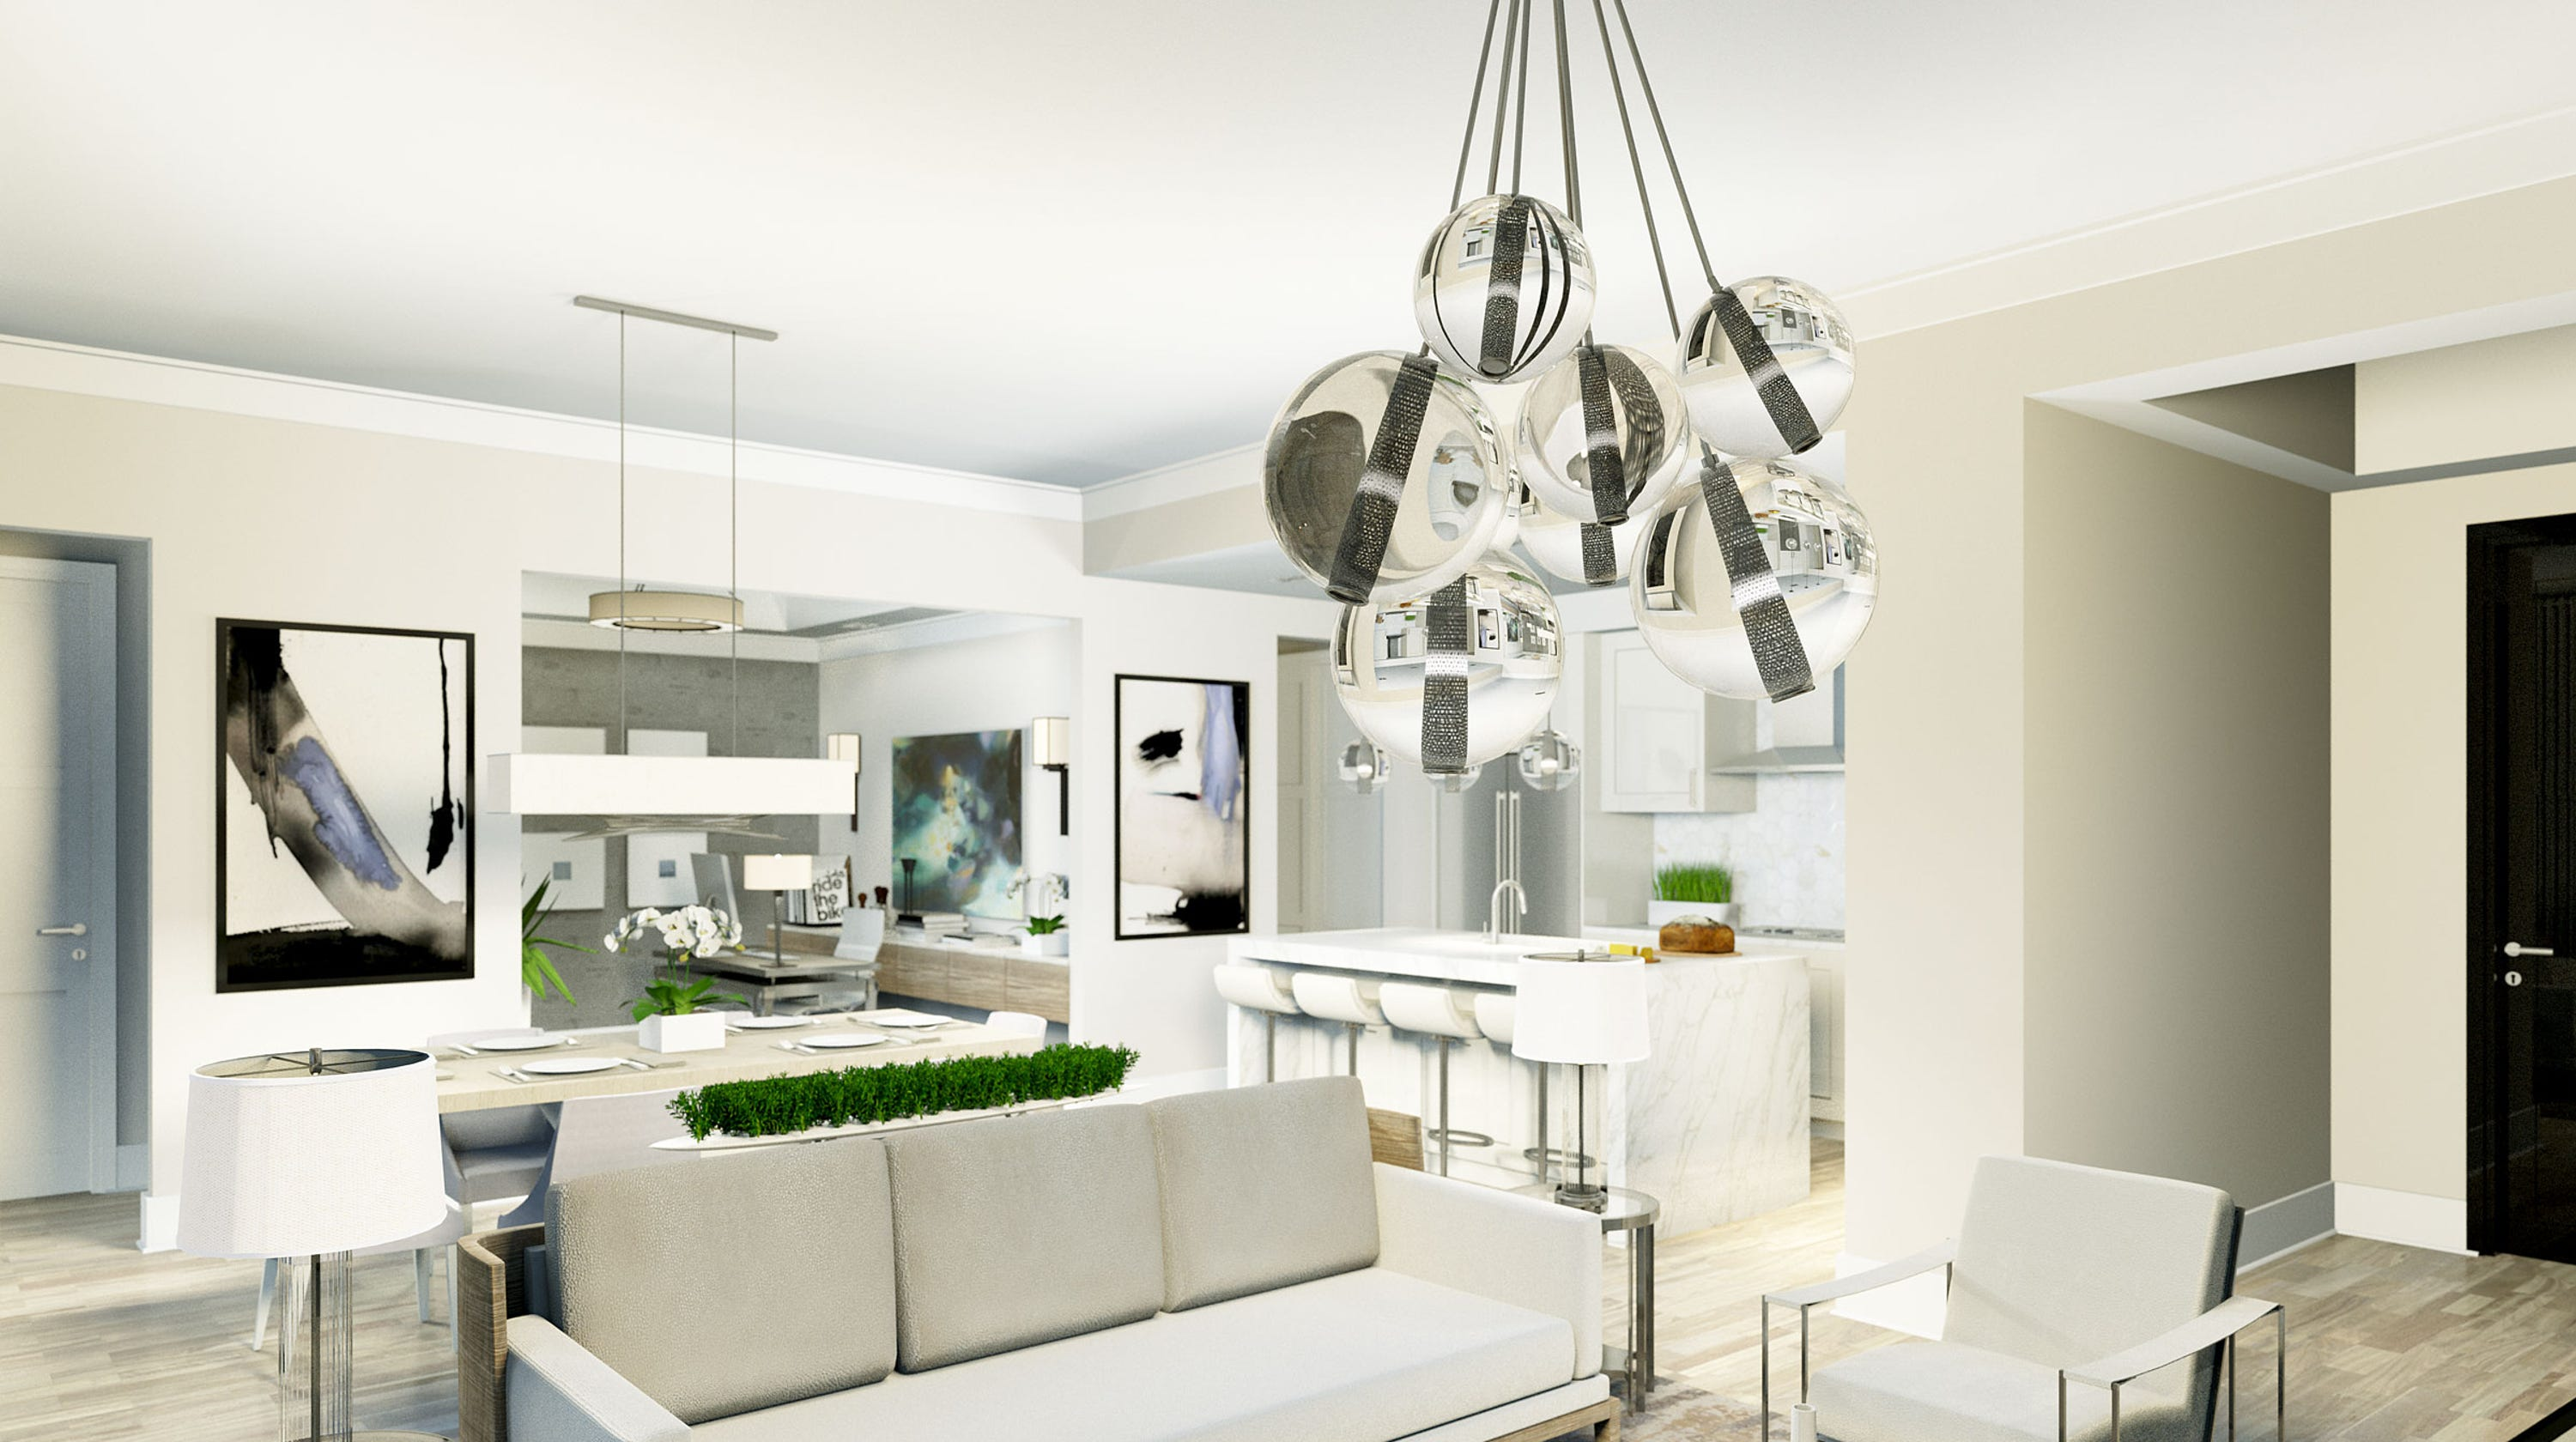 Phase Iii Biltmore Model Open For Viewing At Naples Square